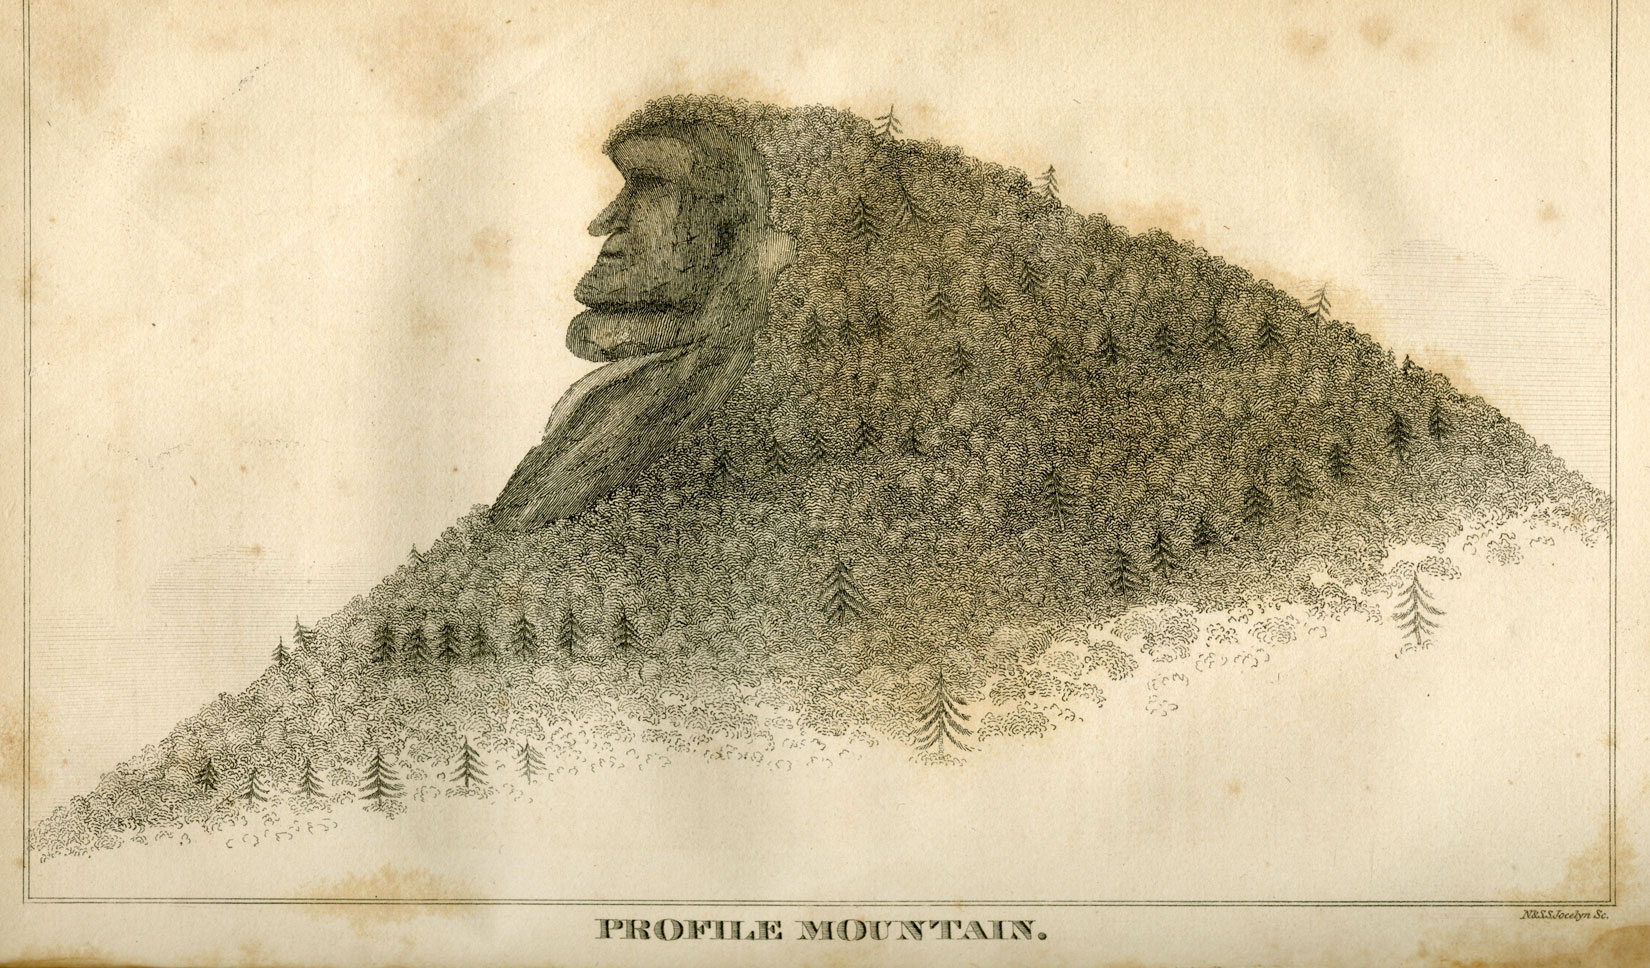 A black and white drawing of a mountain is seen. On the mountain are many trees, notably large pine trees. On the top of the mountain a face in profile, formed from rock, looks to the left. It is about a third the height of the mountain.